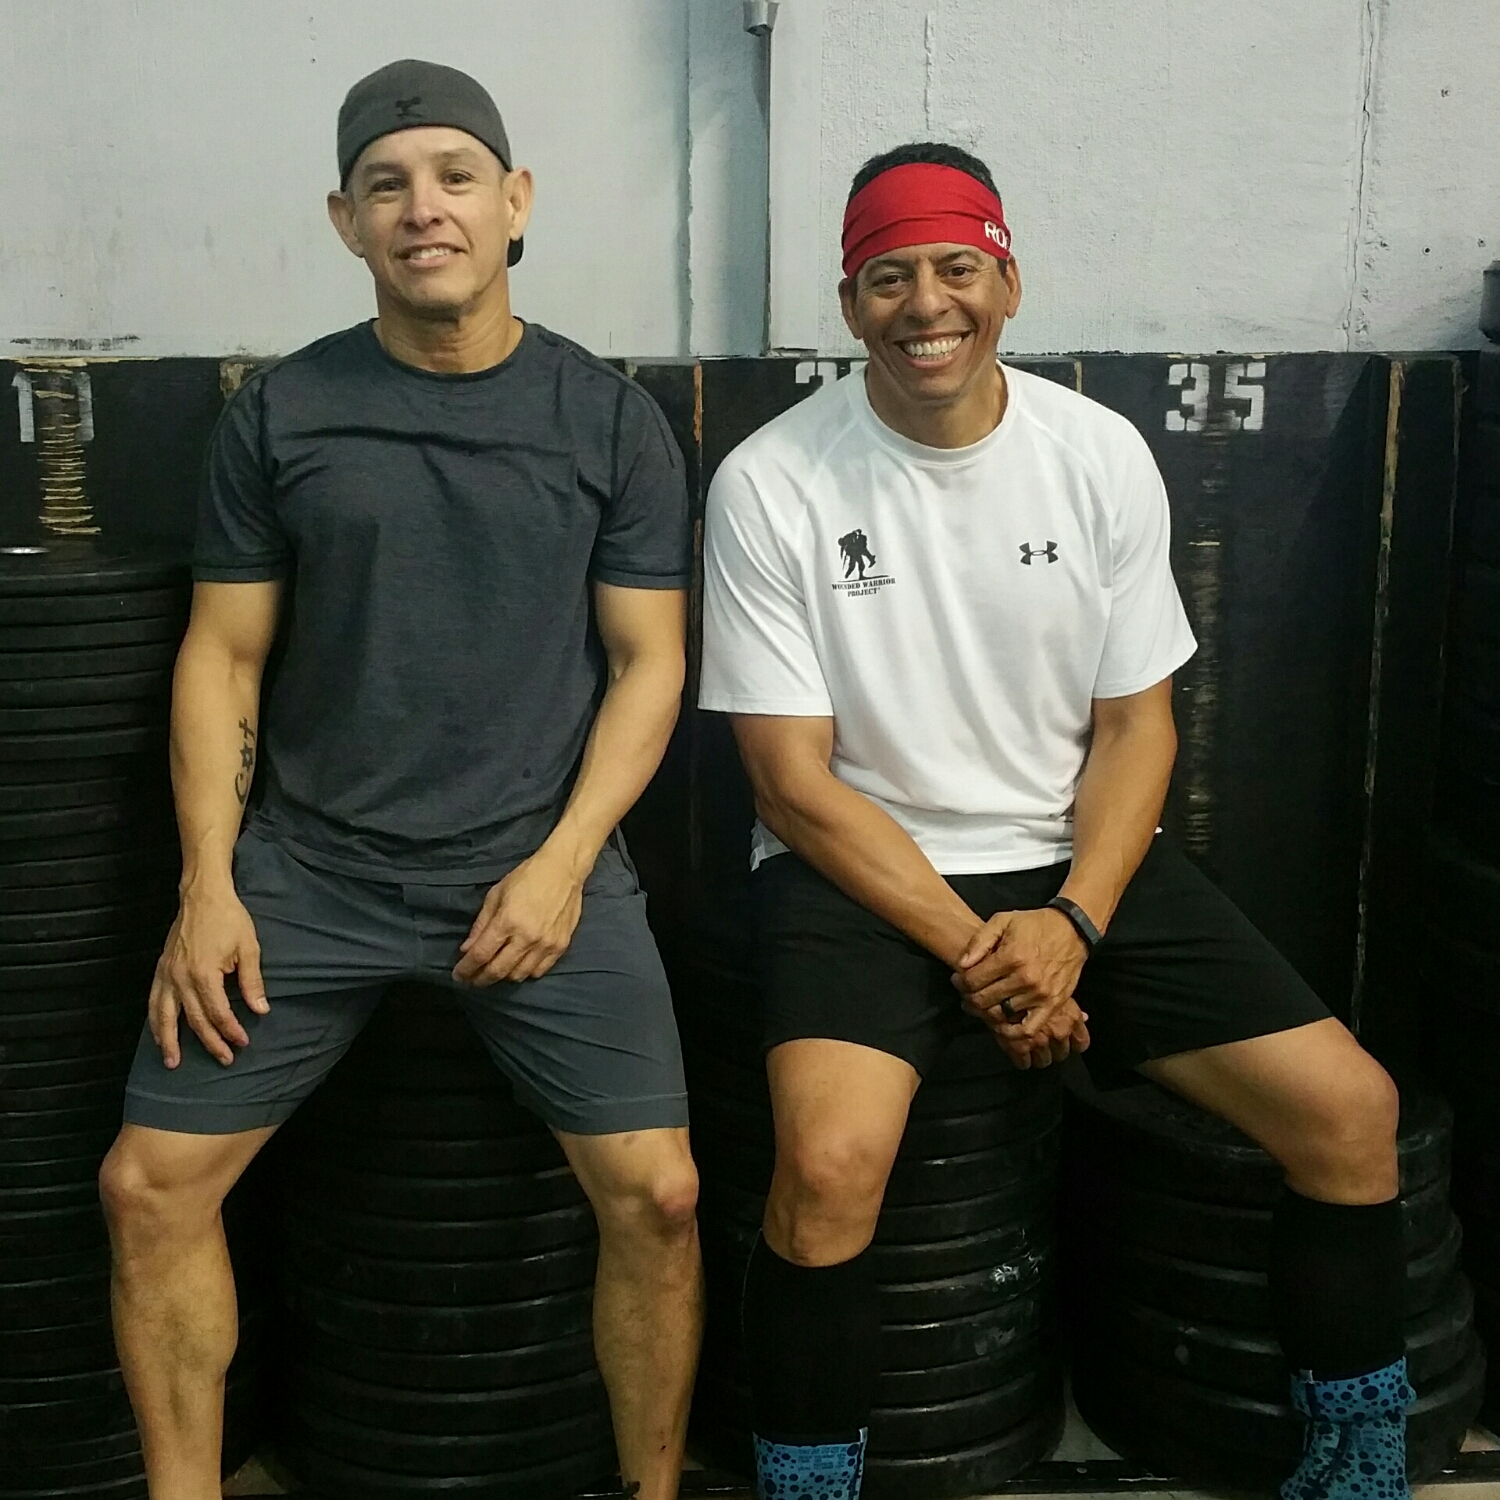 Rene (left) and Marc (right) are this week's featured Skyline athletes signing up for the CrossFit Open on Feb 25th. They are both in the Masters Division (40yrs and older) and will be Marc's 2nd year participating and  Rene's 3rd year.